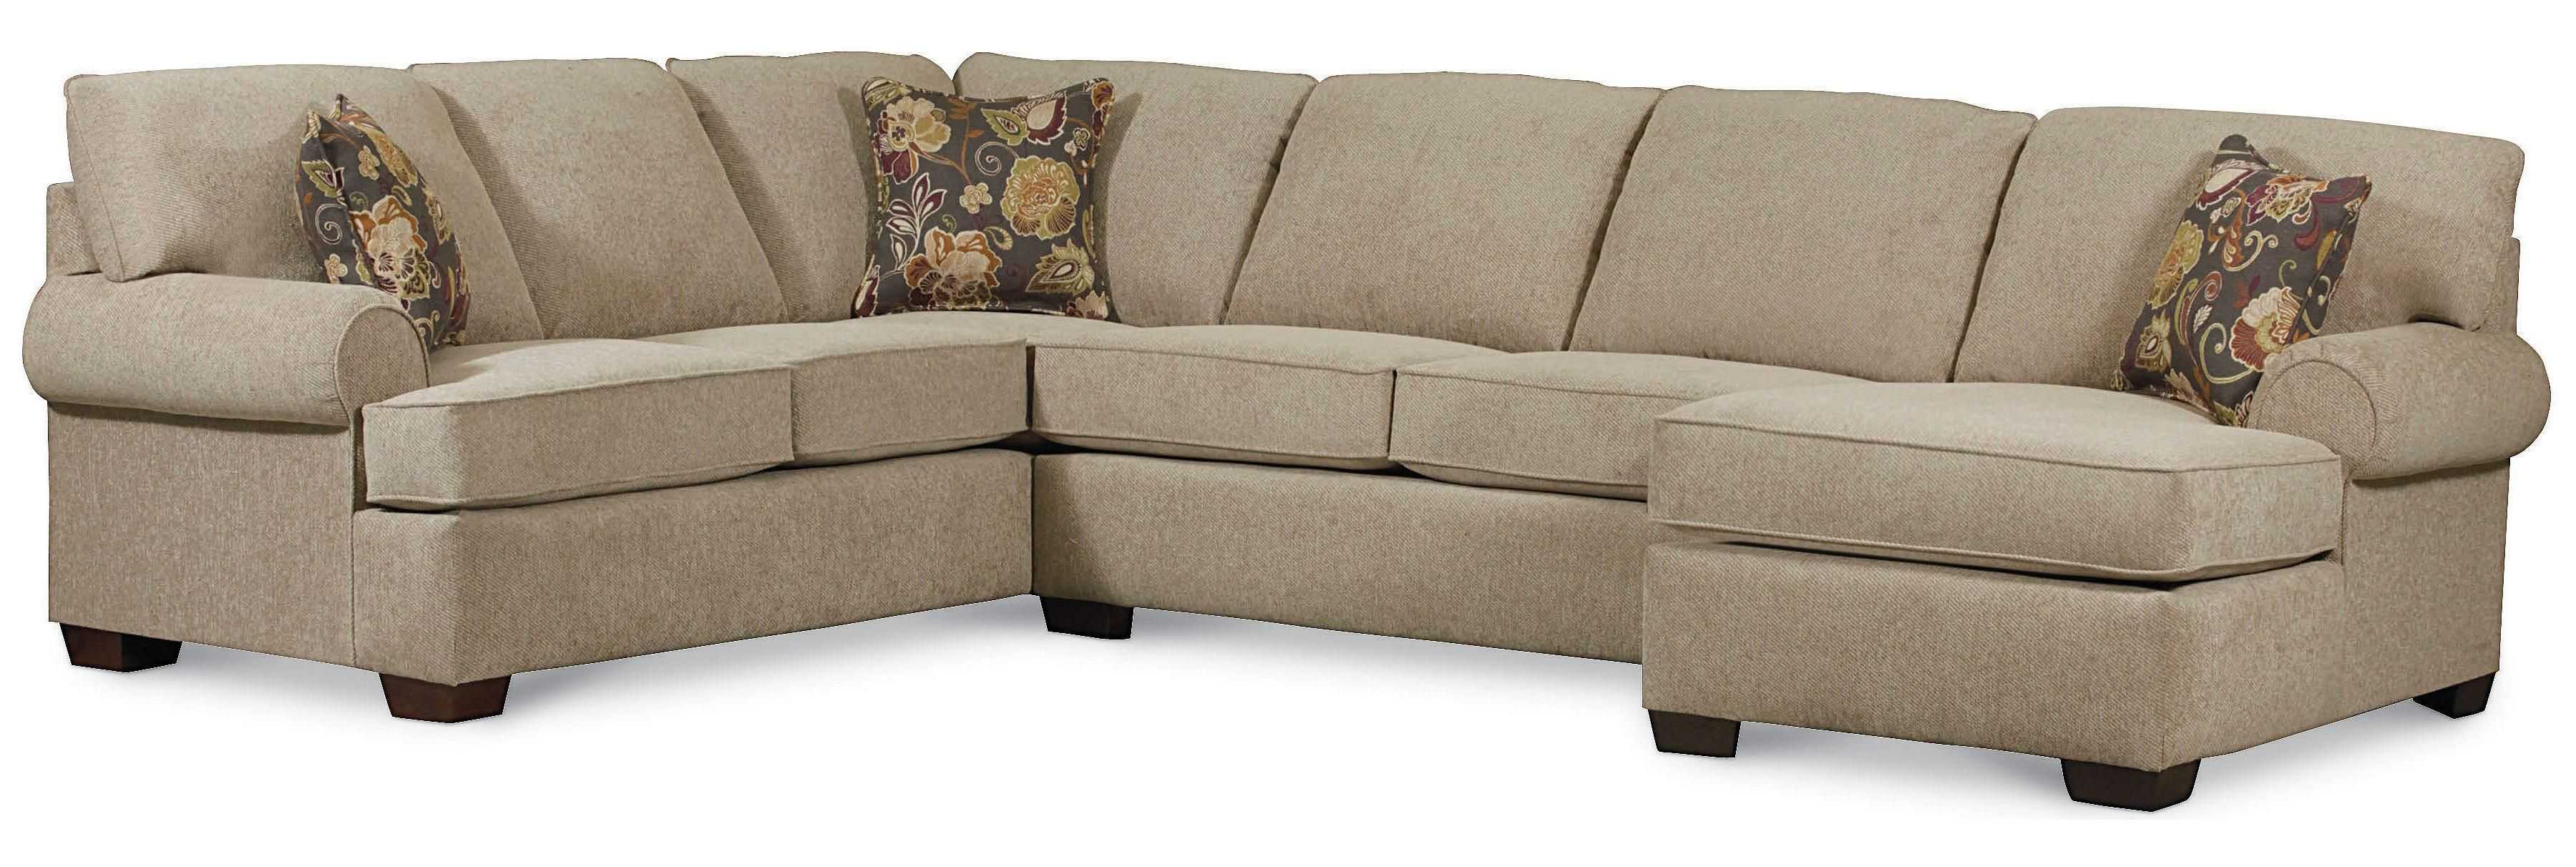 Vivian Transitional 3 Piece Sectional Sofa By Lane